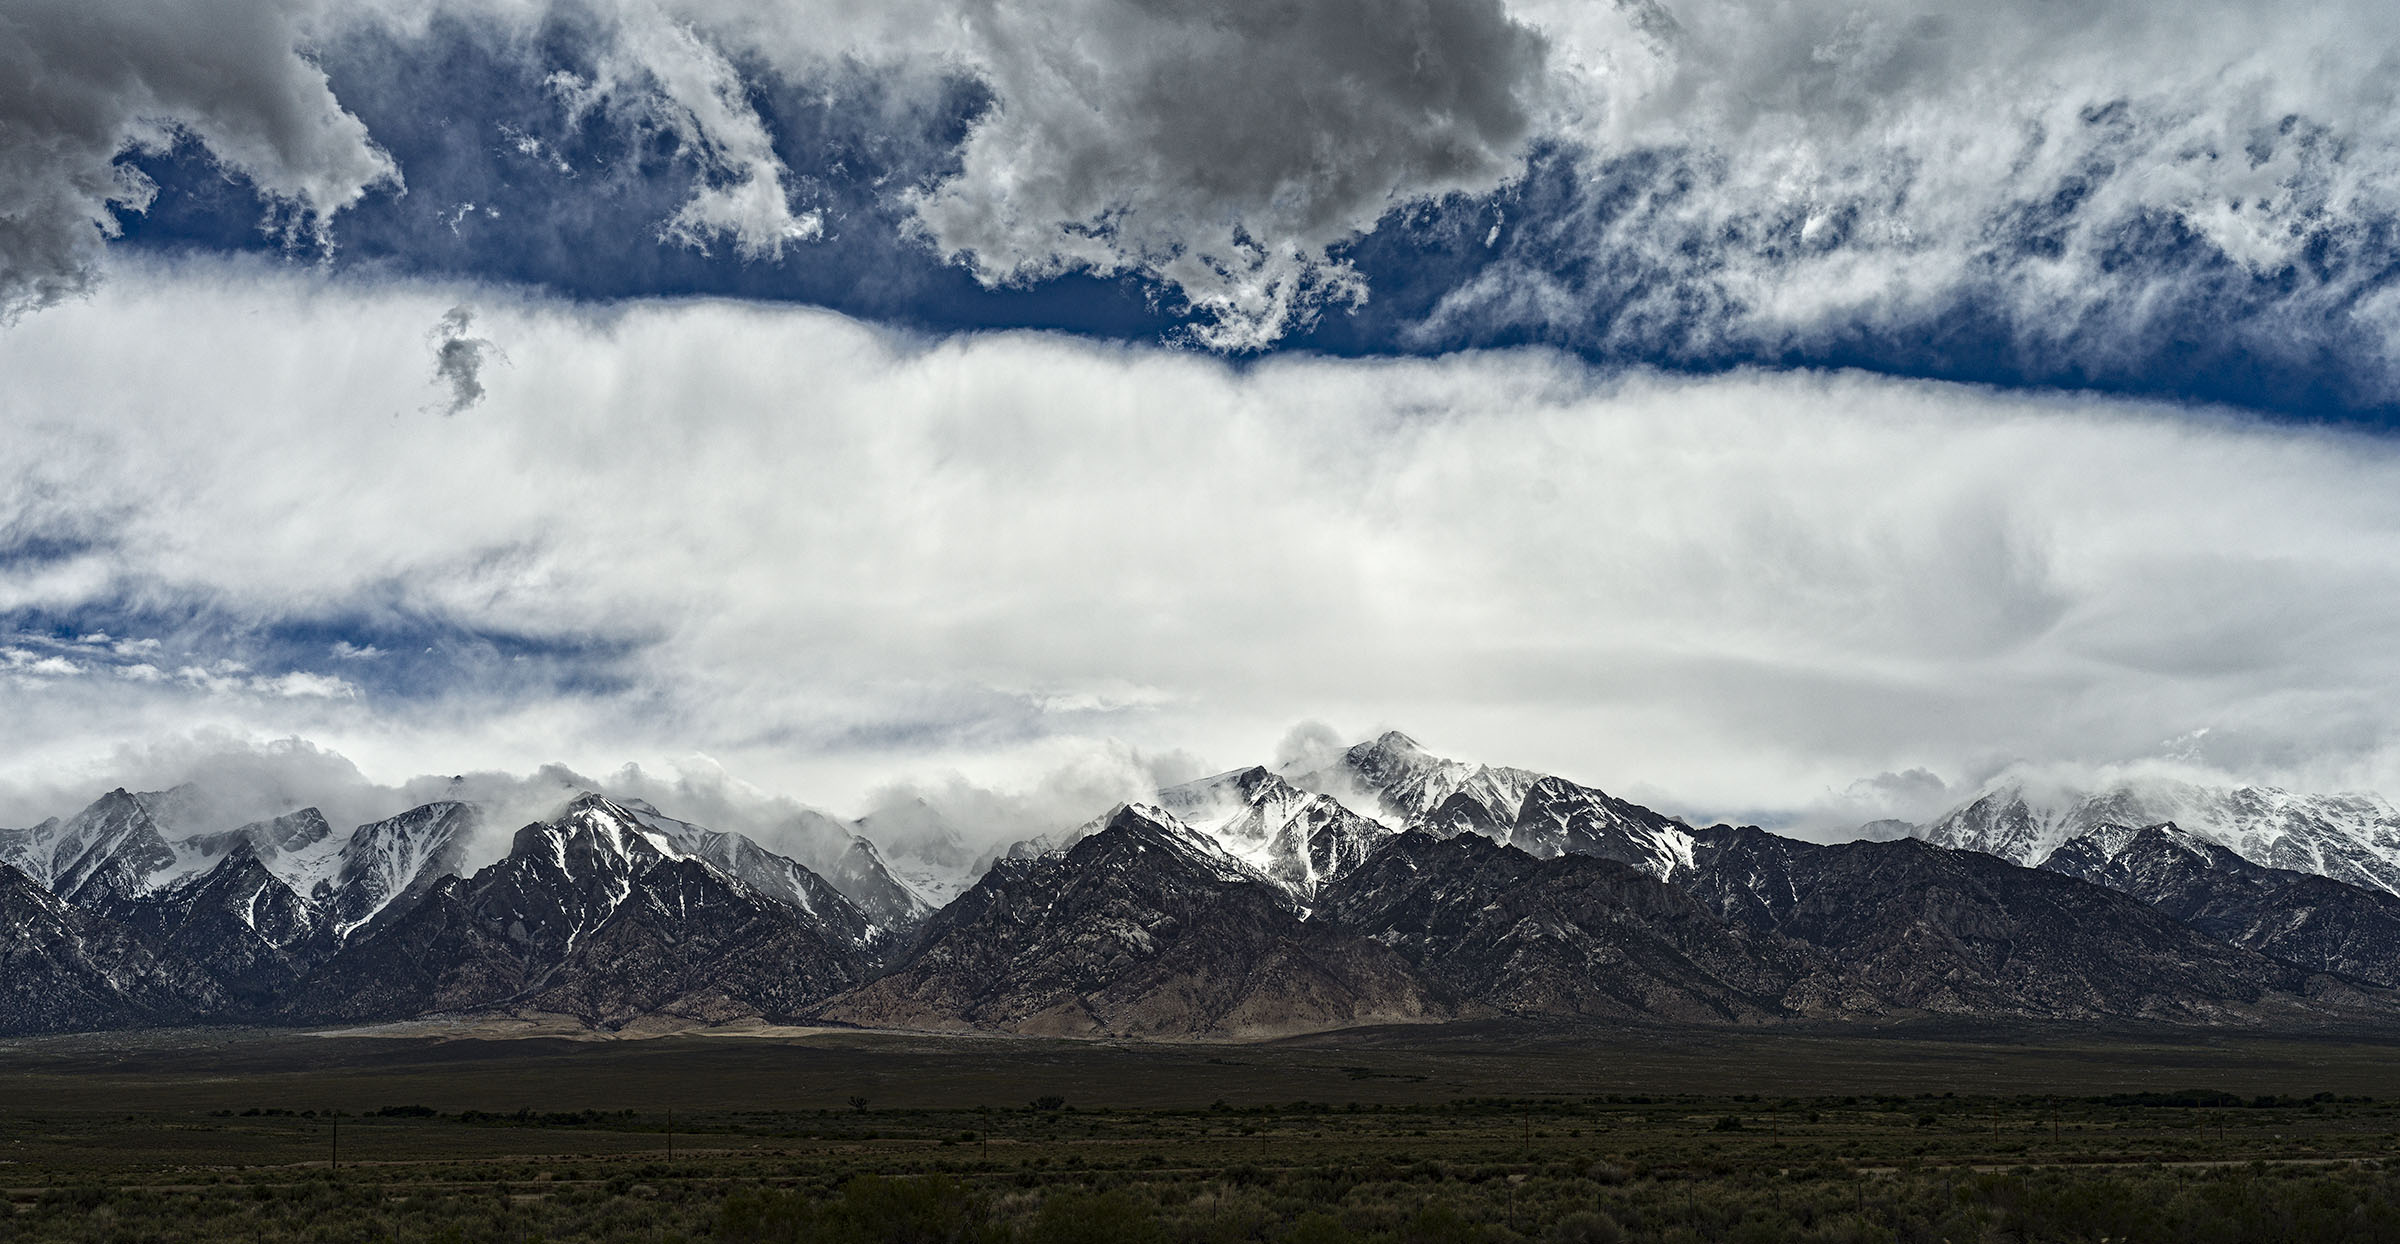 East Side of the Sierras, near Whitney, Wick Beavers Photographer